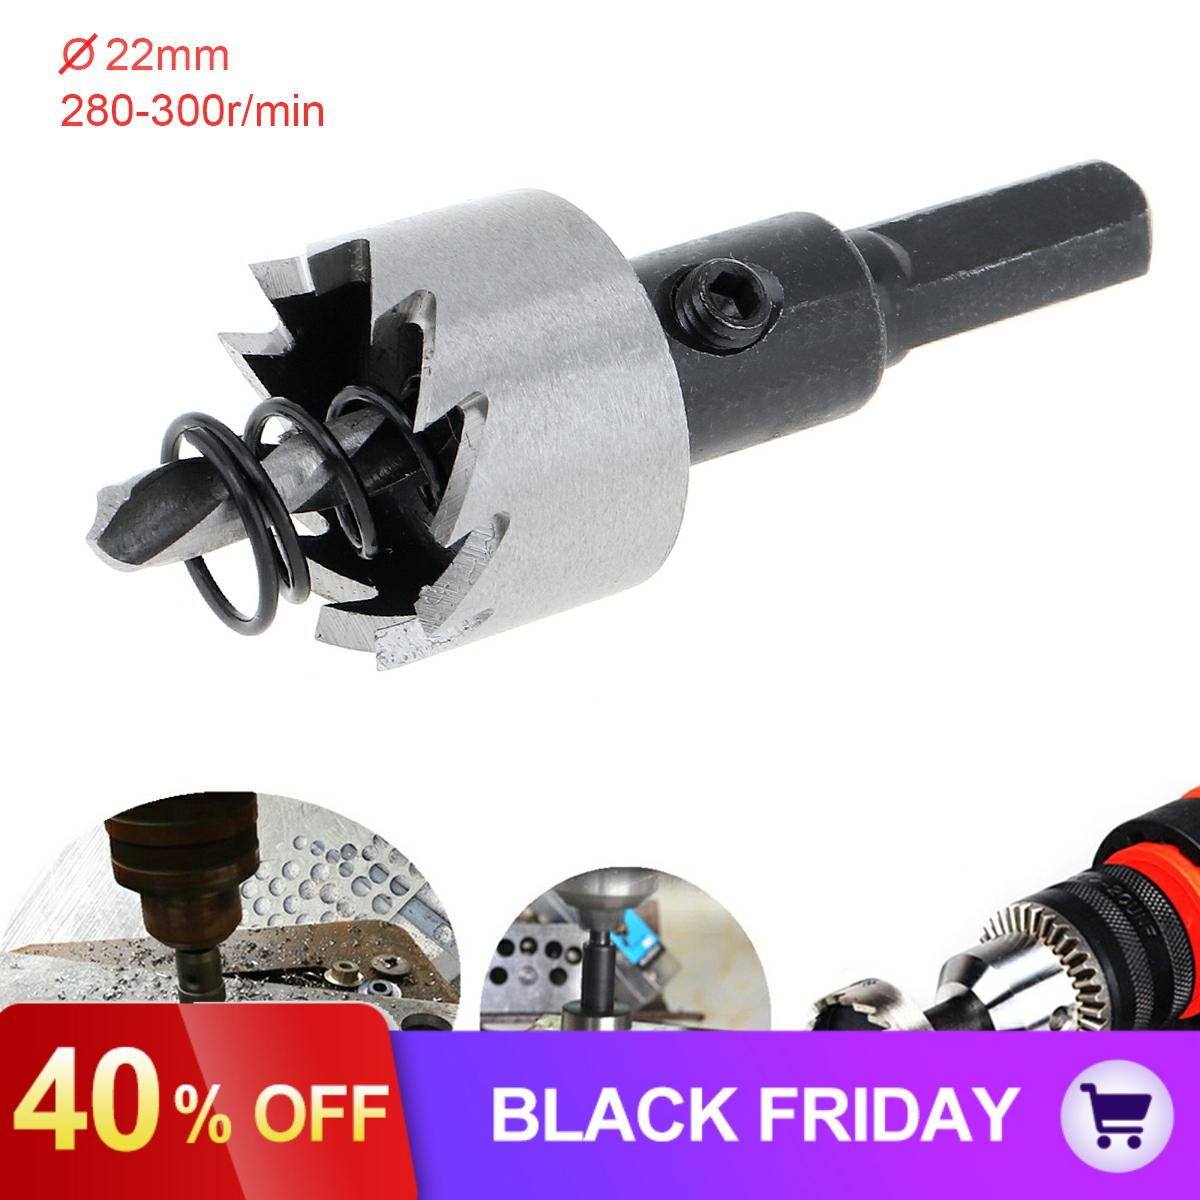 22mm/HSS Hole Saw Cutter Drill Bits For Pistol Drills/Bench Drills/Magnetic Drills/Air Gun Drills